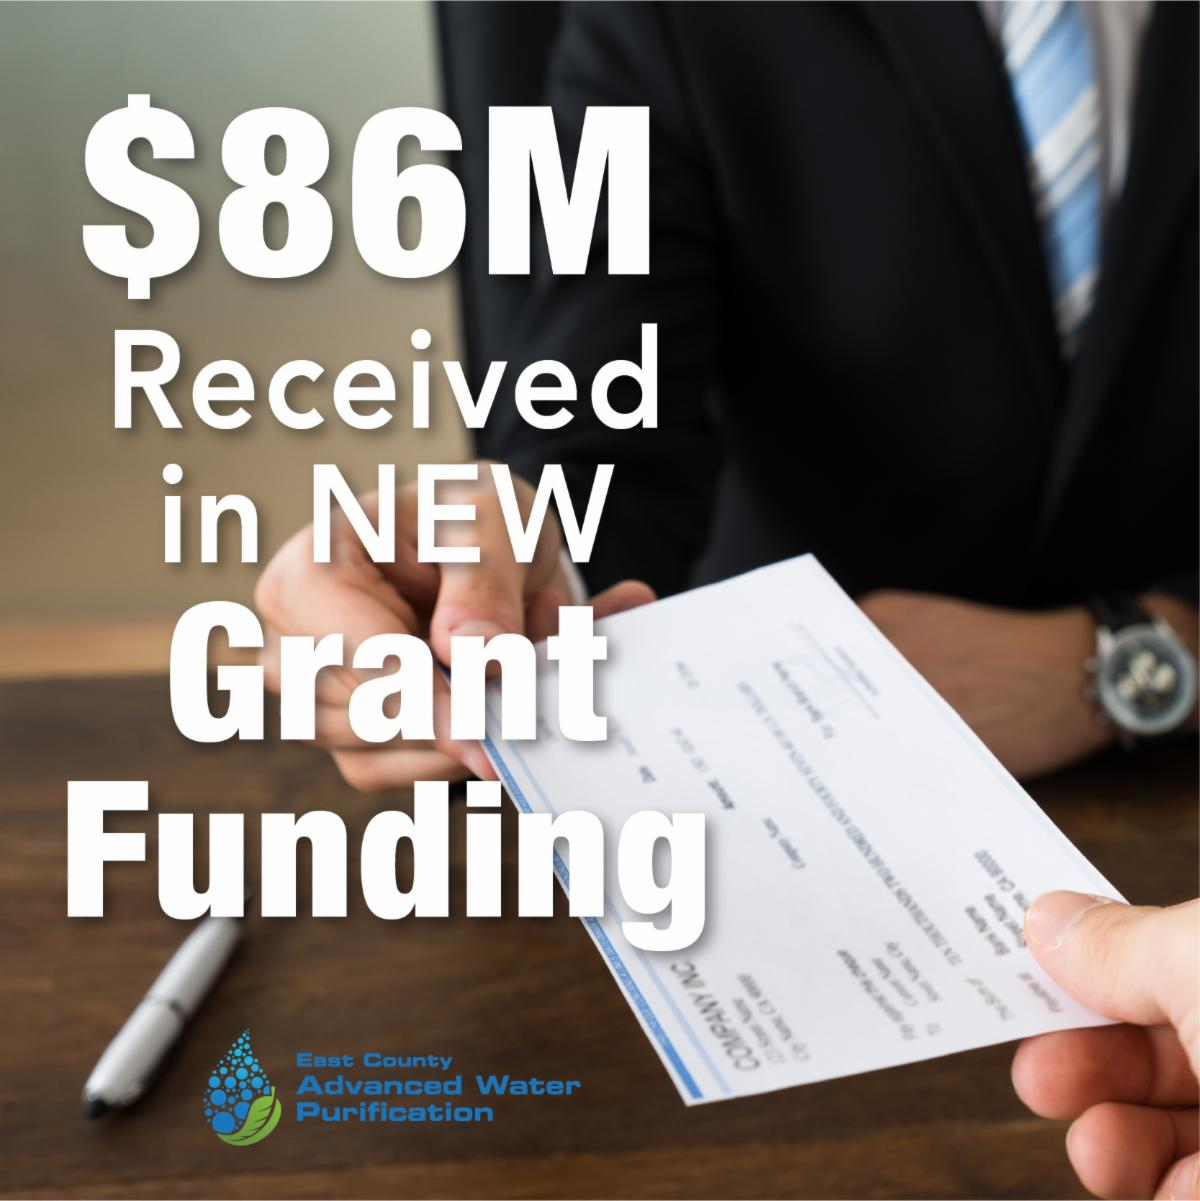 86M Received in New Grant Funding (image)